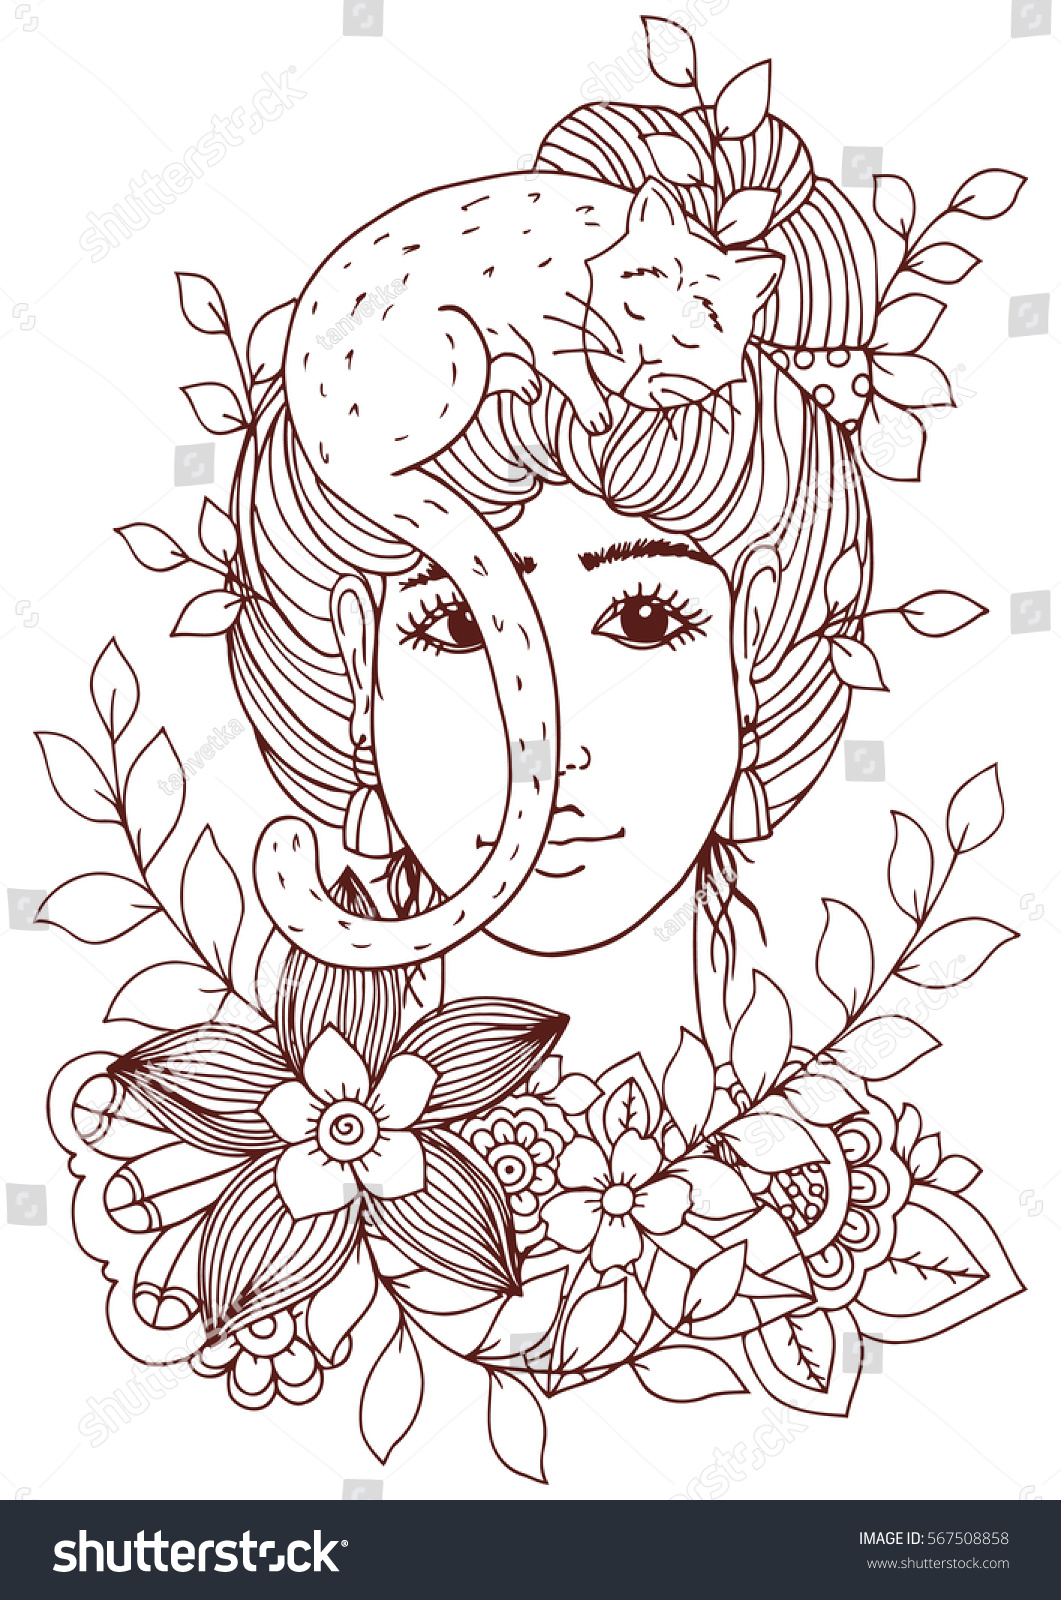 Zen cat coloring page - Vector Illustration Of Handmade Work Zentangle Girl With Flowers And Cat Doodle Drawing